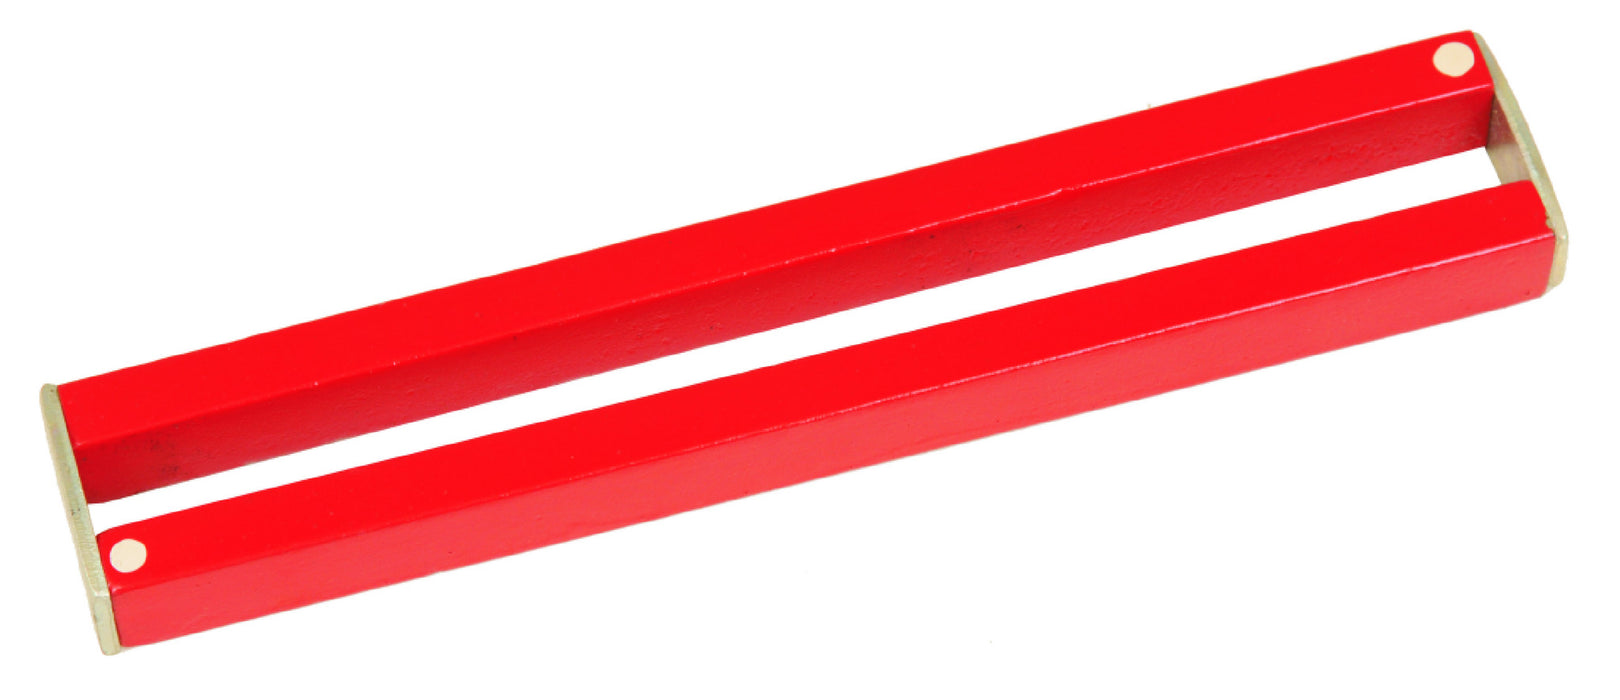 EISCO Alnico Bar Magnets, Pair - 75x11x6mm